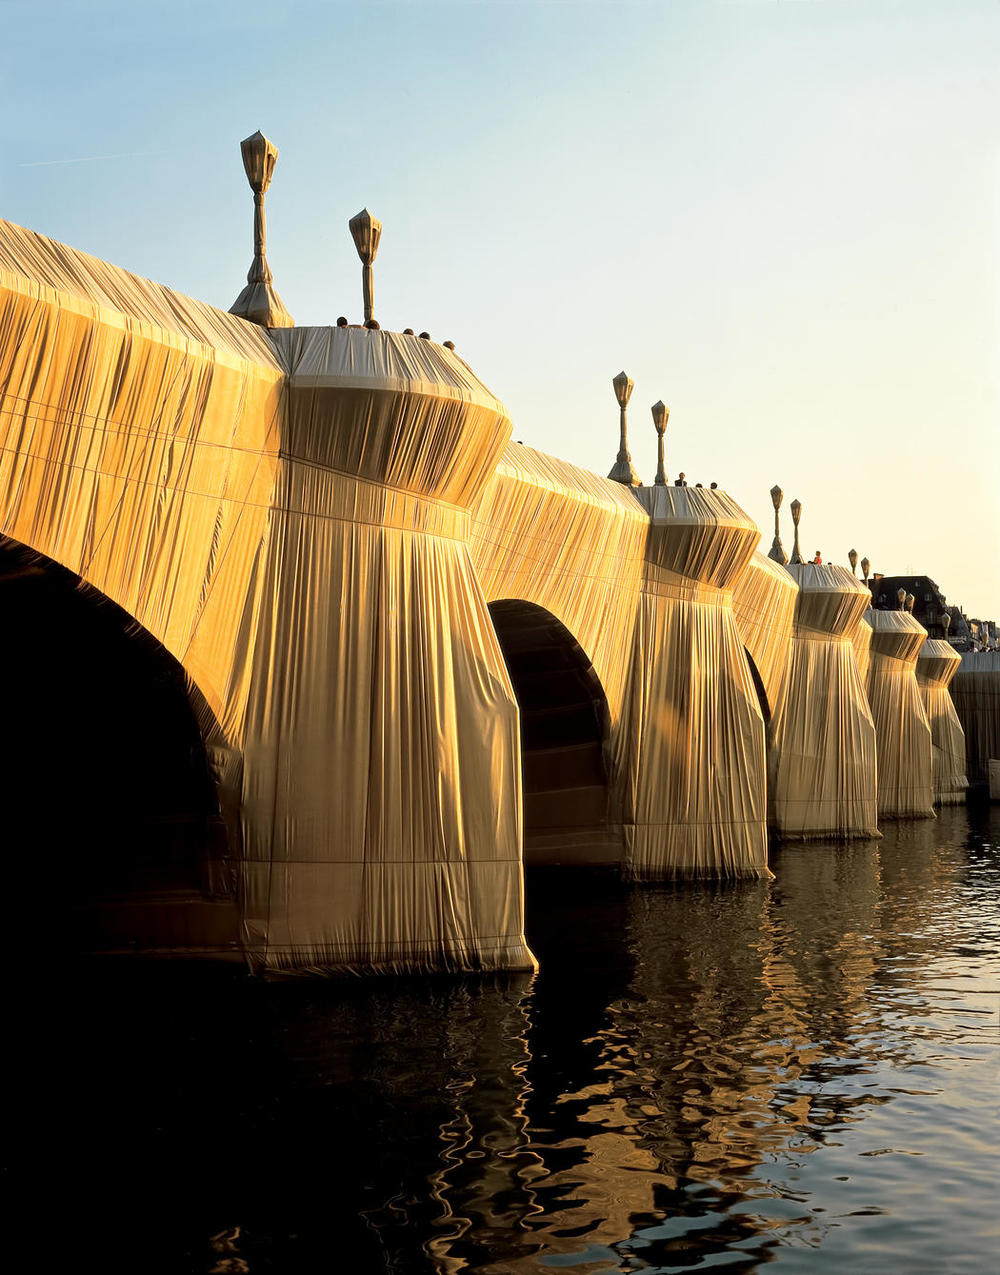 Christo and Jeanne-Claude. The pont neuf wrapped. Paris. 1975-1985